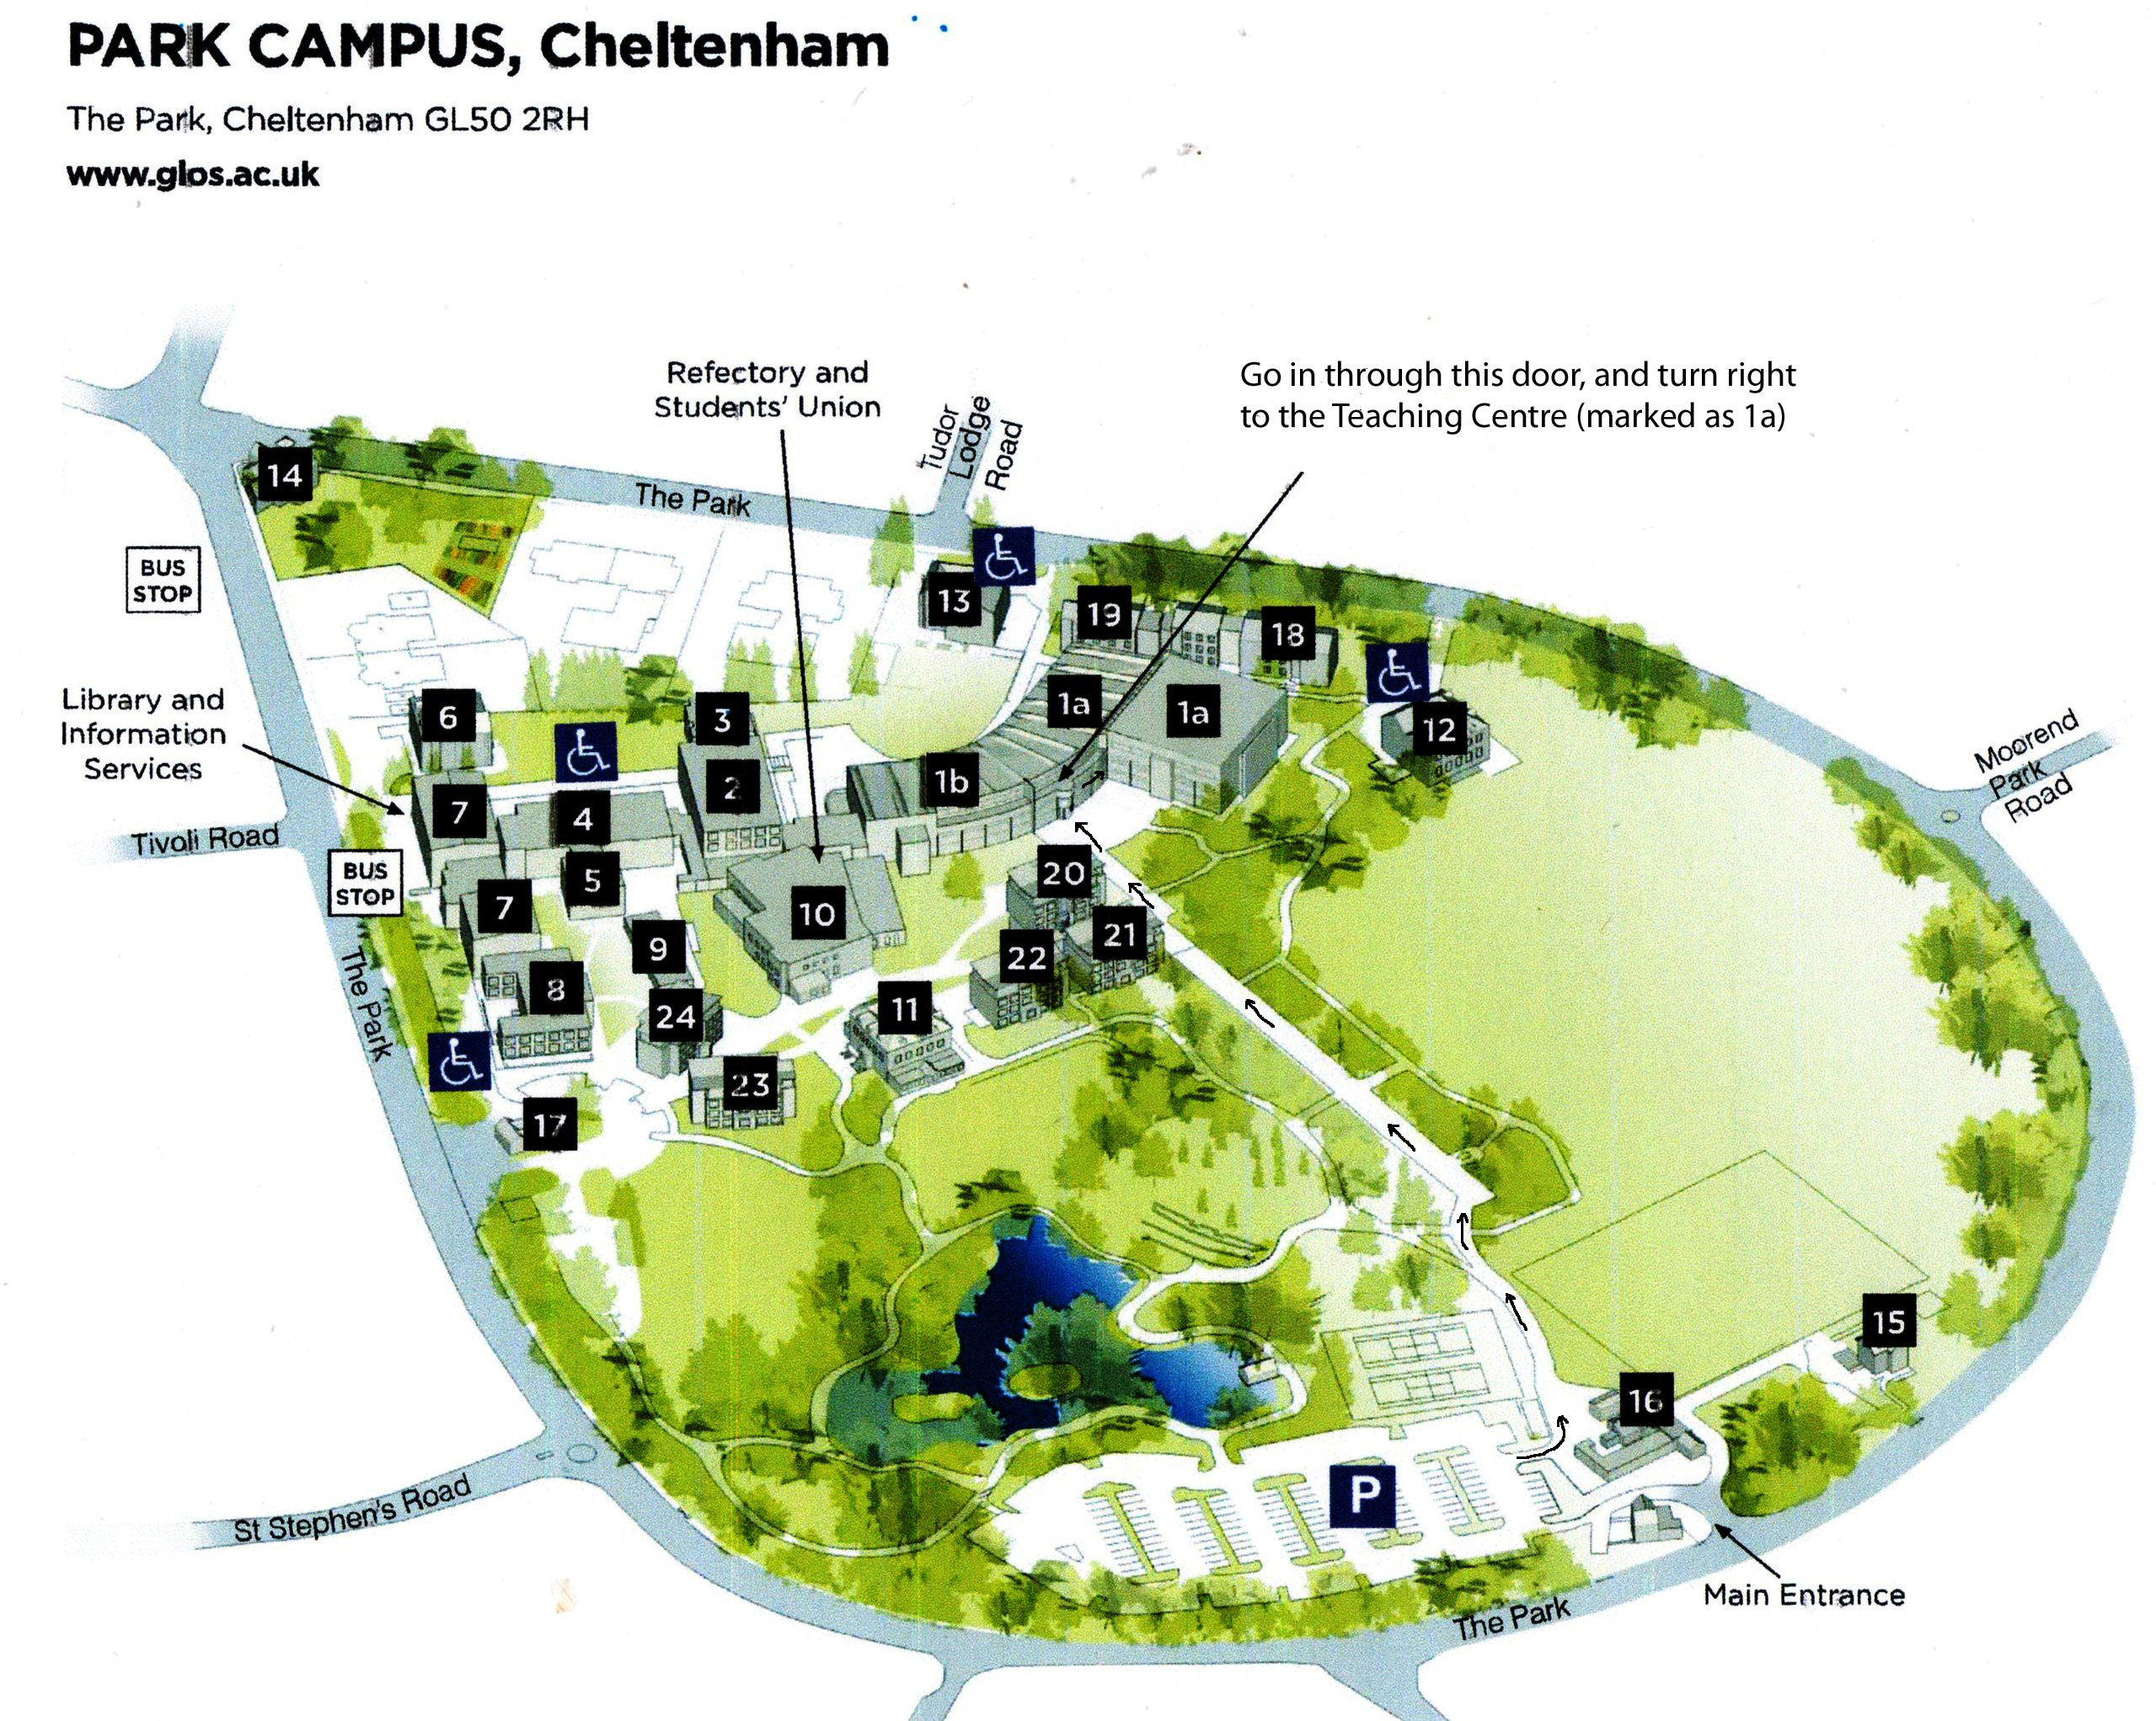 Park campus map  - route from car park to meeting room.jpg